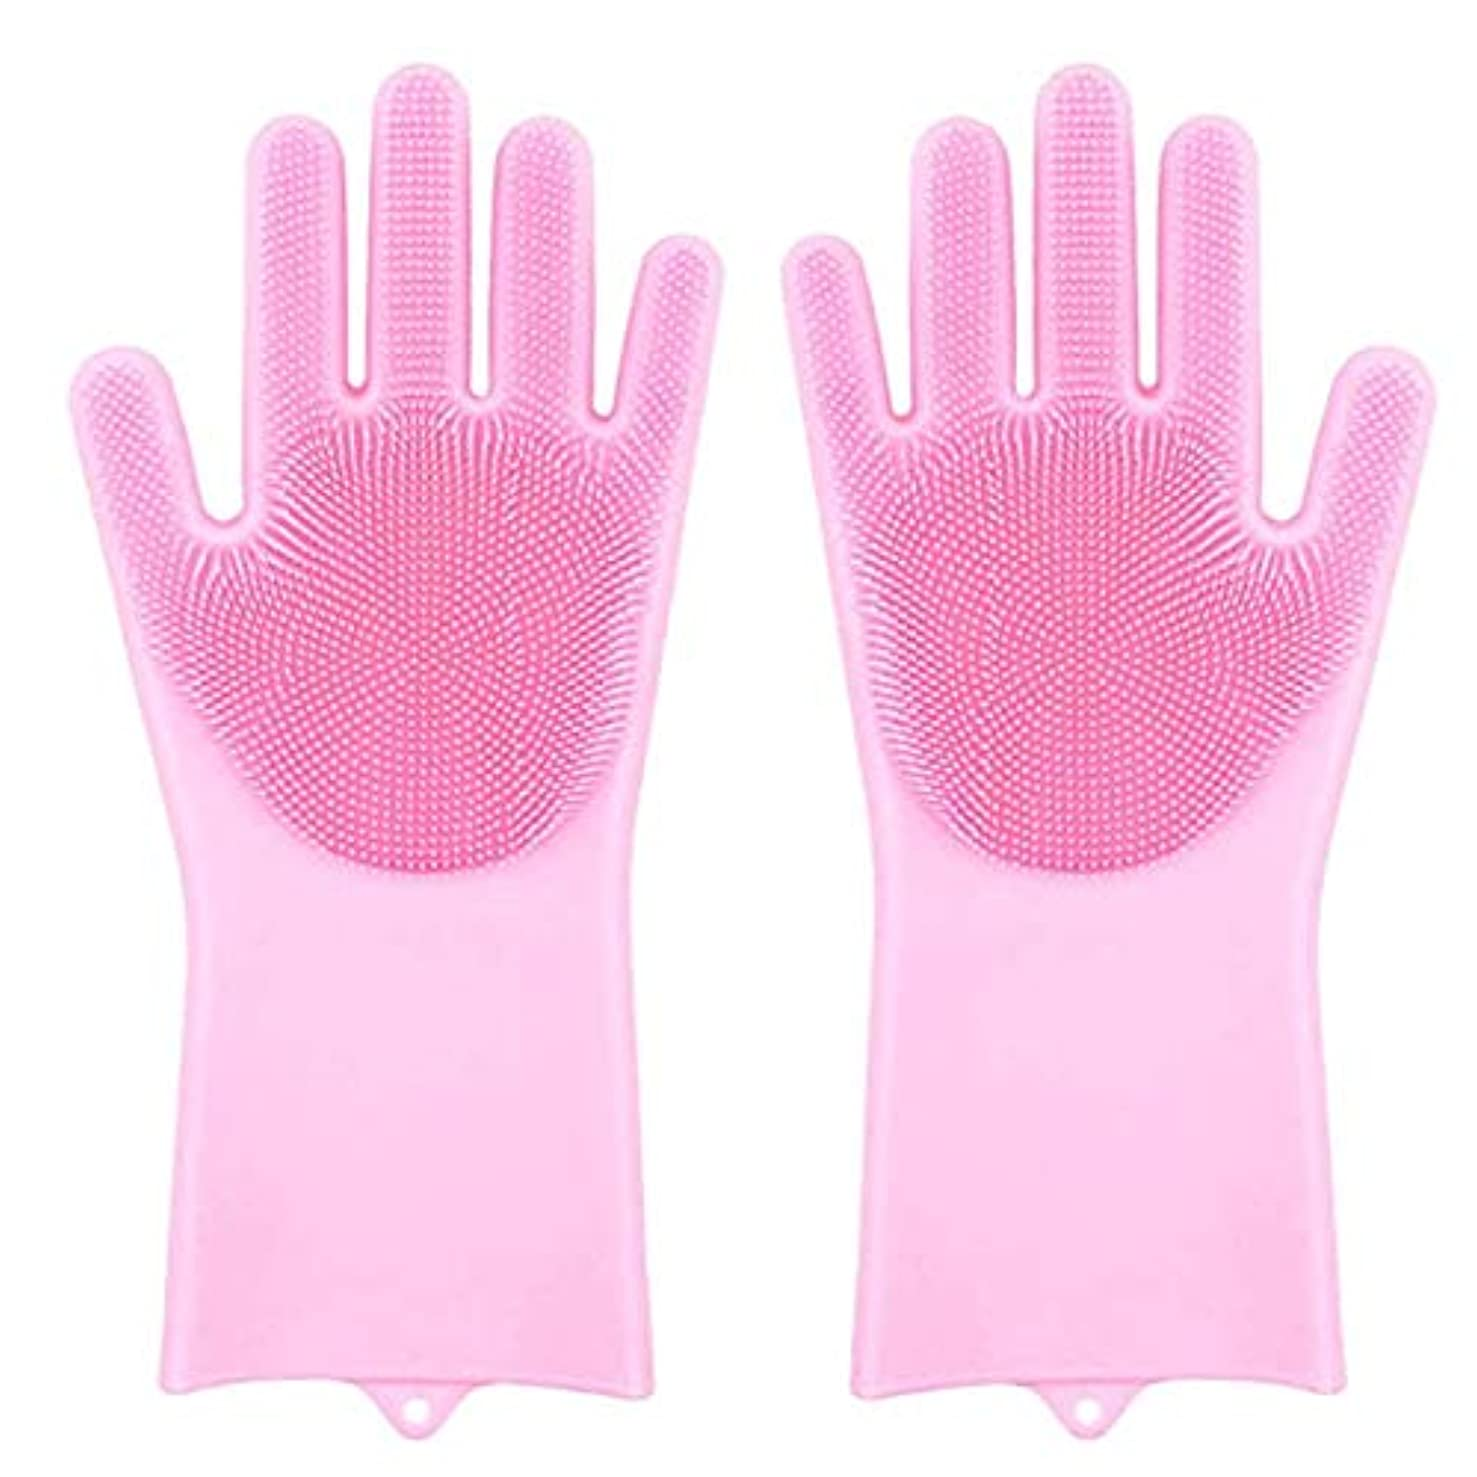 Magic Silicone Scrubbing Gloves Reusable Scrub Cleaning Gloves with Scrubber for Dishwashing and Pet Grooming,Kitchen, Bathroom Pink